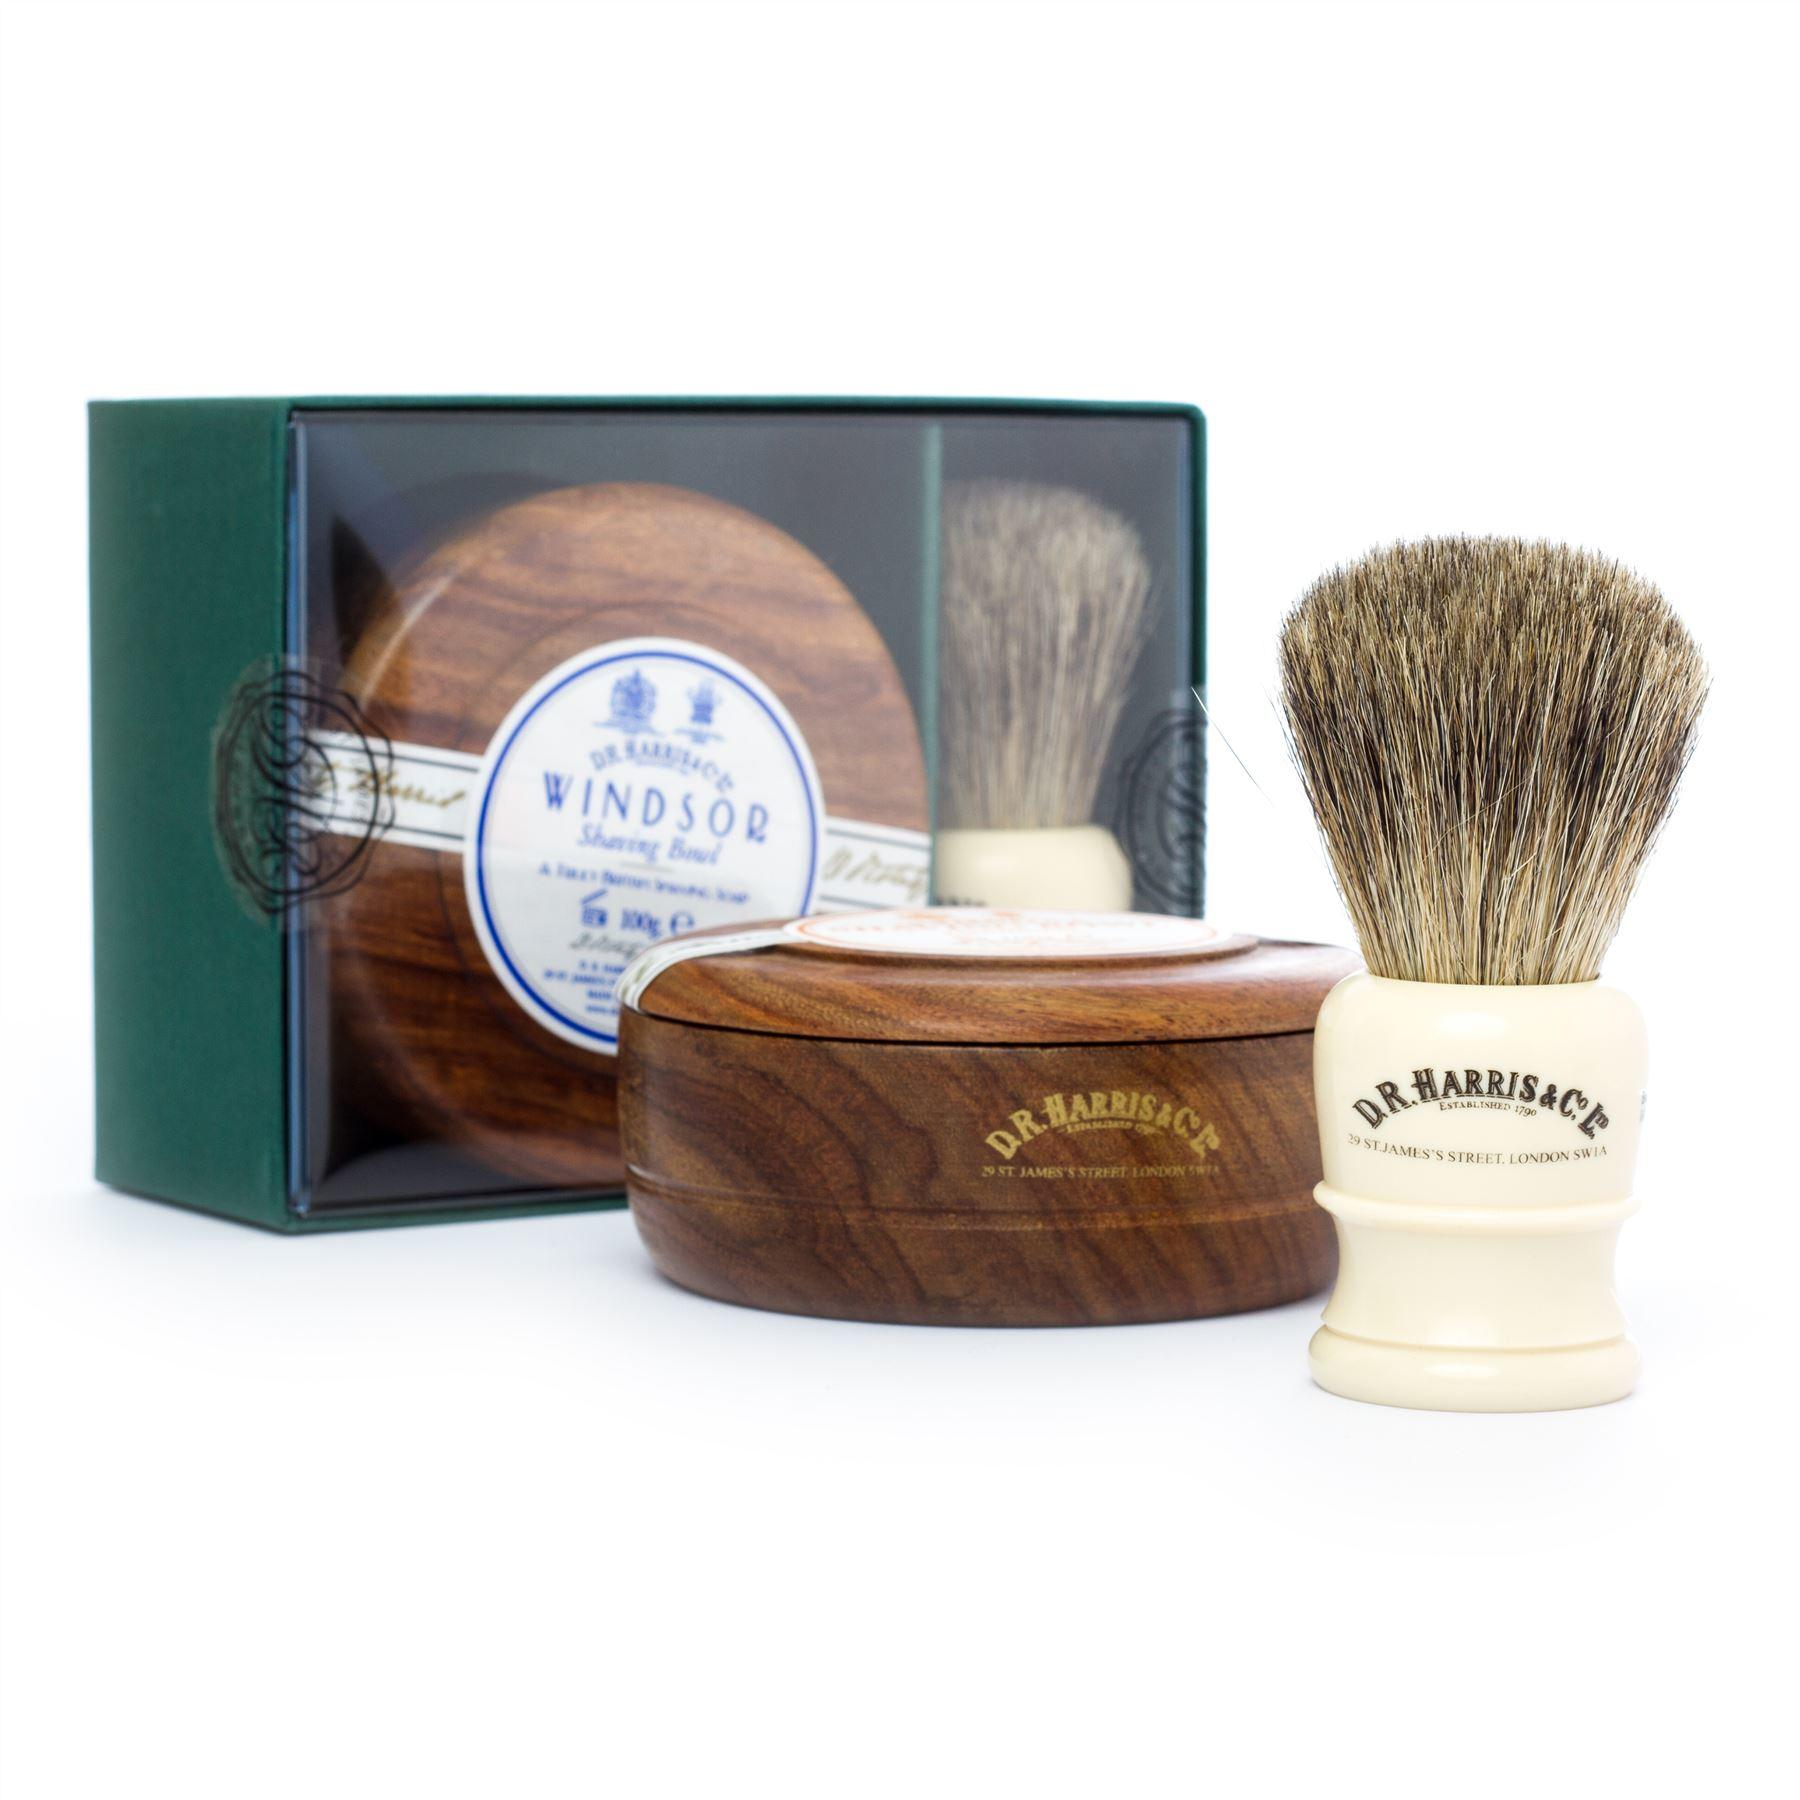 DR Harris & Co Faux Ivory Shaving Brush, Mahogany Bowl & Windsor Shave Soap Gift Set